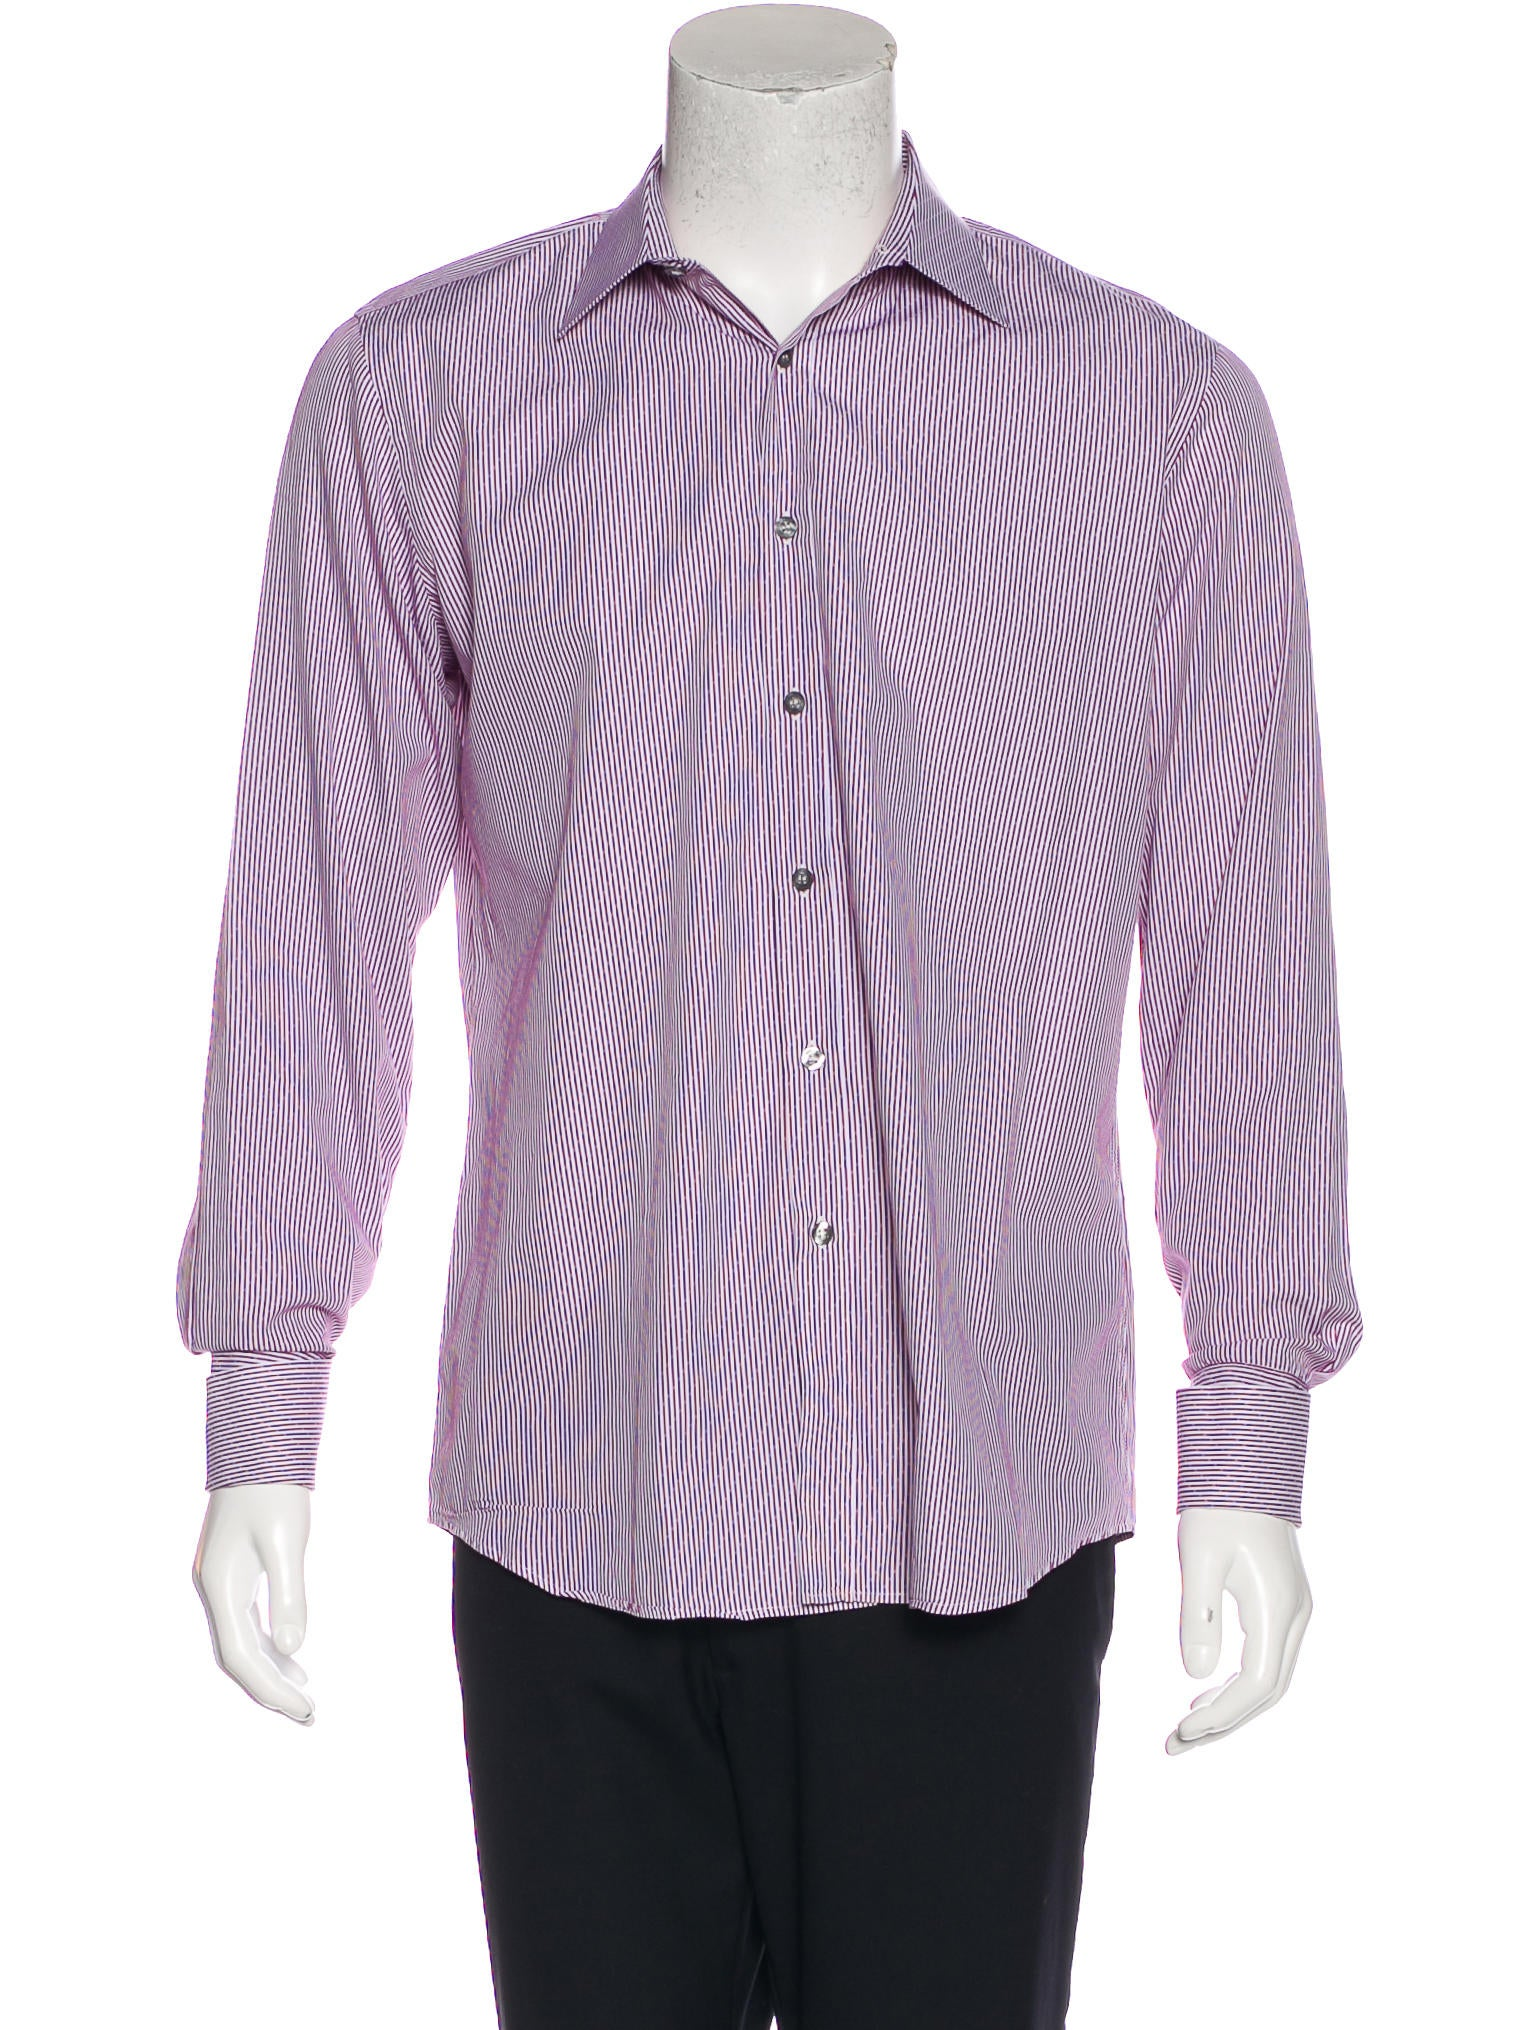 Paul smith striped french cuff shirt clothing wps24511 for French cuff dress shirts for sale